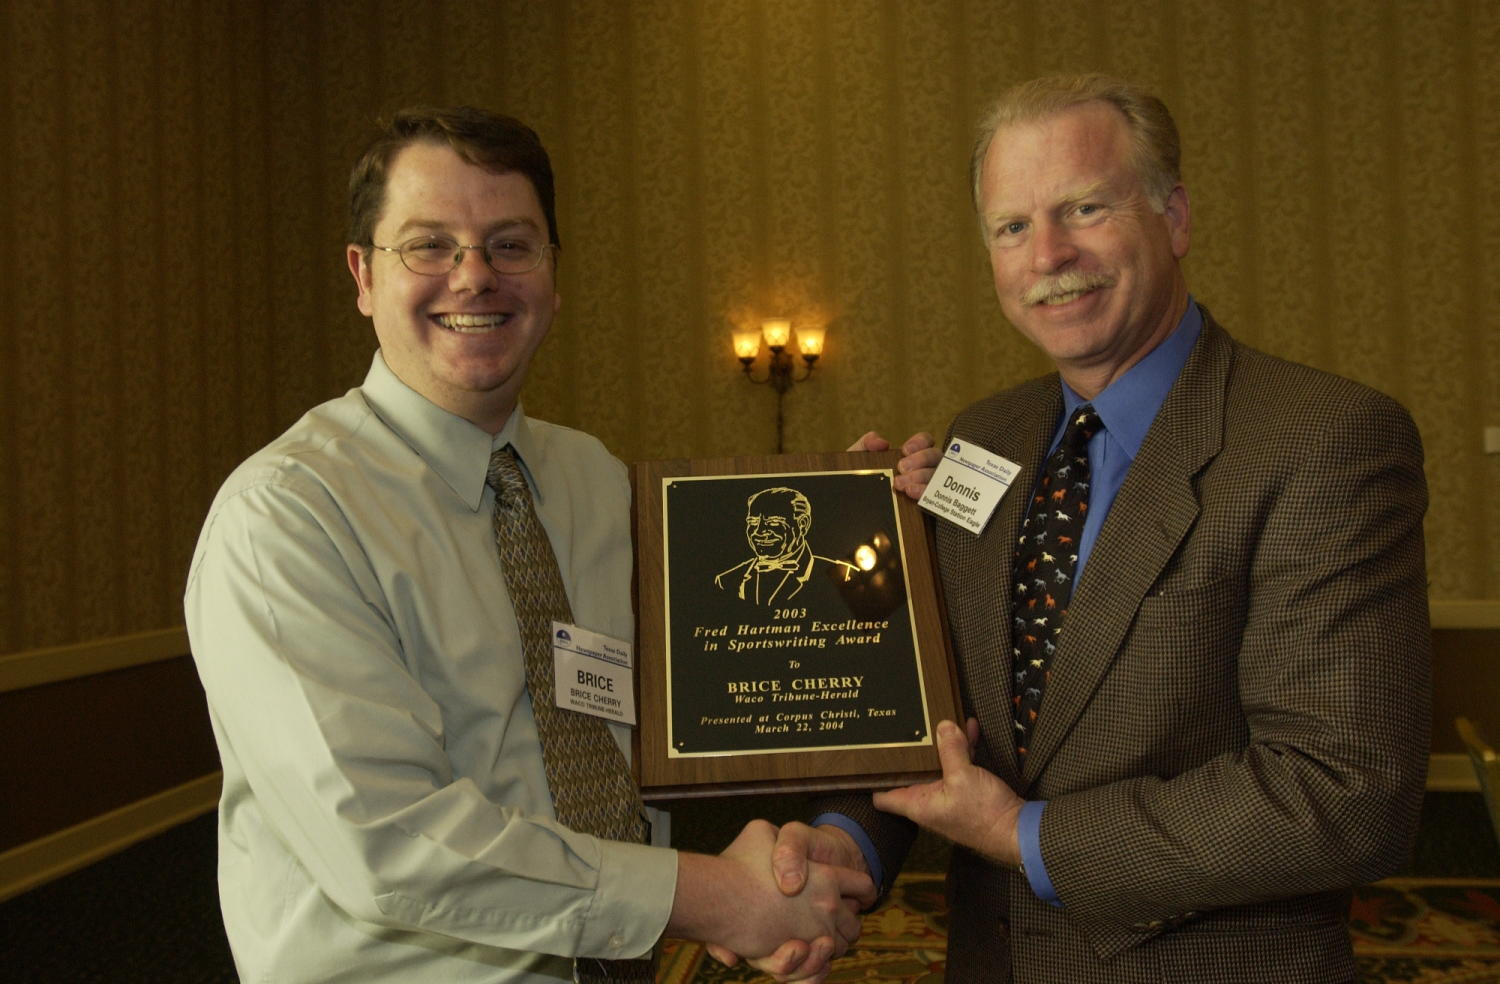 """[Donnis Bagget handing out plaque award to Brice Cherry], Photograph of Donnis Bagget (right) handing an engraved plaque to Brice Cherry, who is receiving the award from the 2004 Texas Daily News Association annual conference held in Corpus Christi. The plaque reads, """"2003 Fred Hartman Excellence in Sportswriting Award to Brice Cherry. Waco Tribune-Herald. Presented at Crrpus Christi, Texas March 22, 2004."""","""